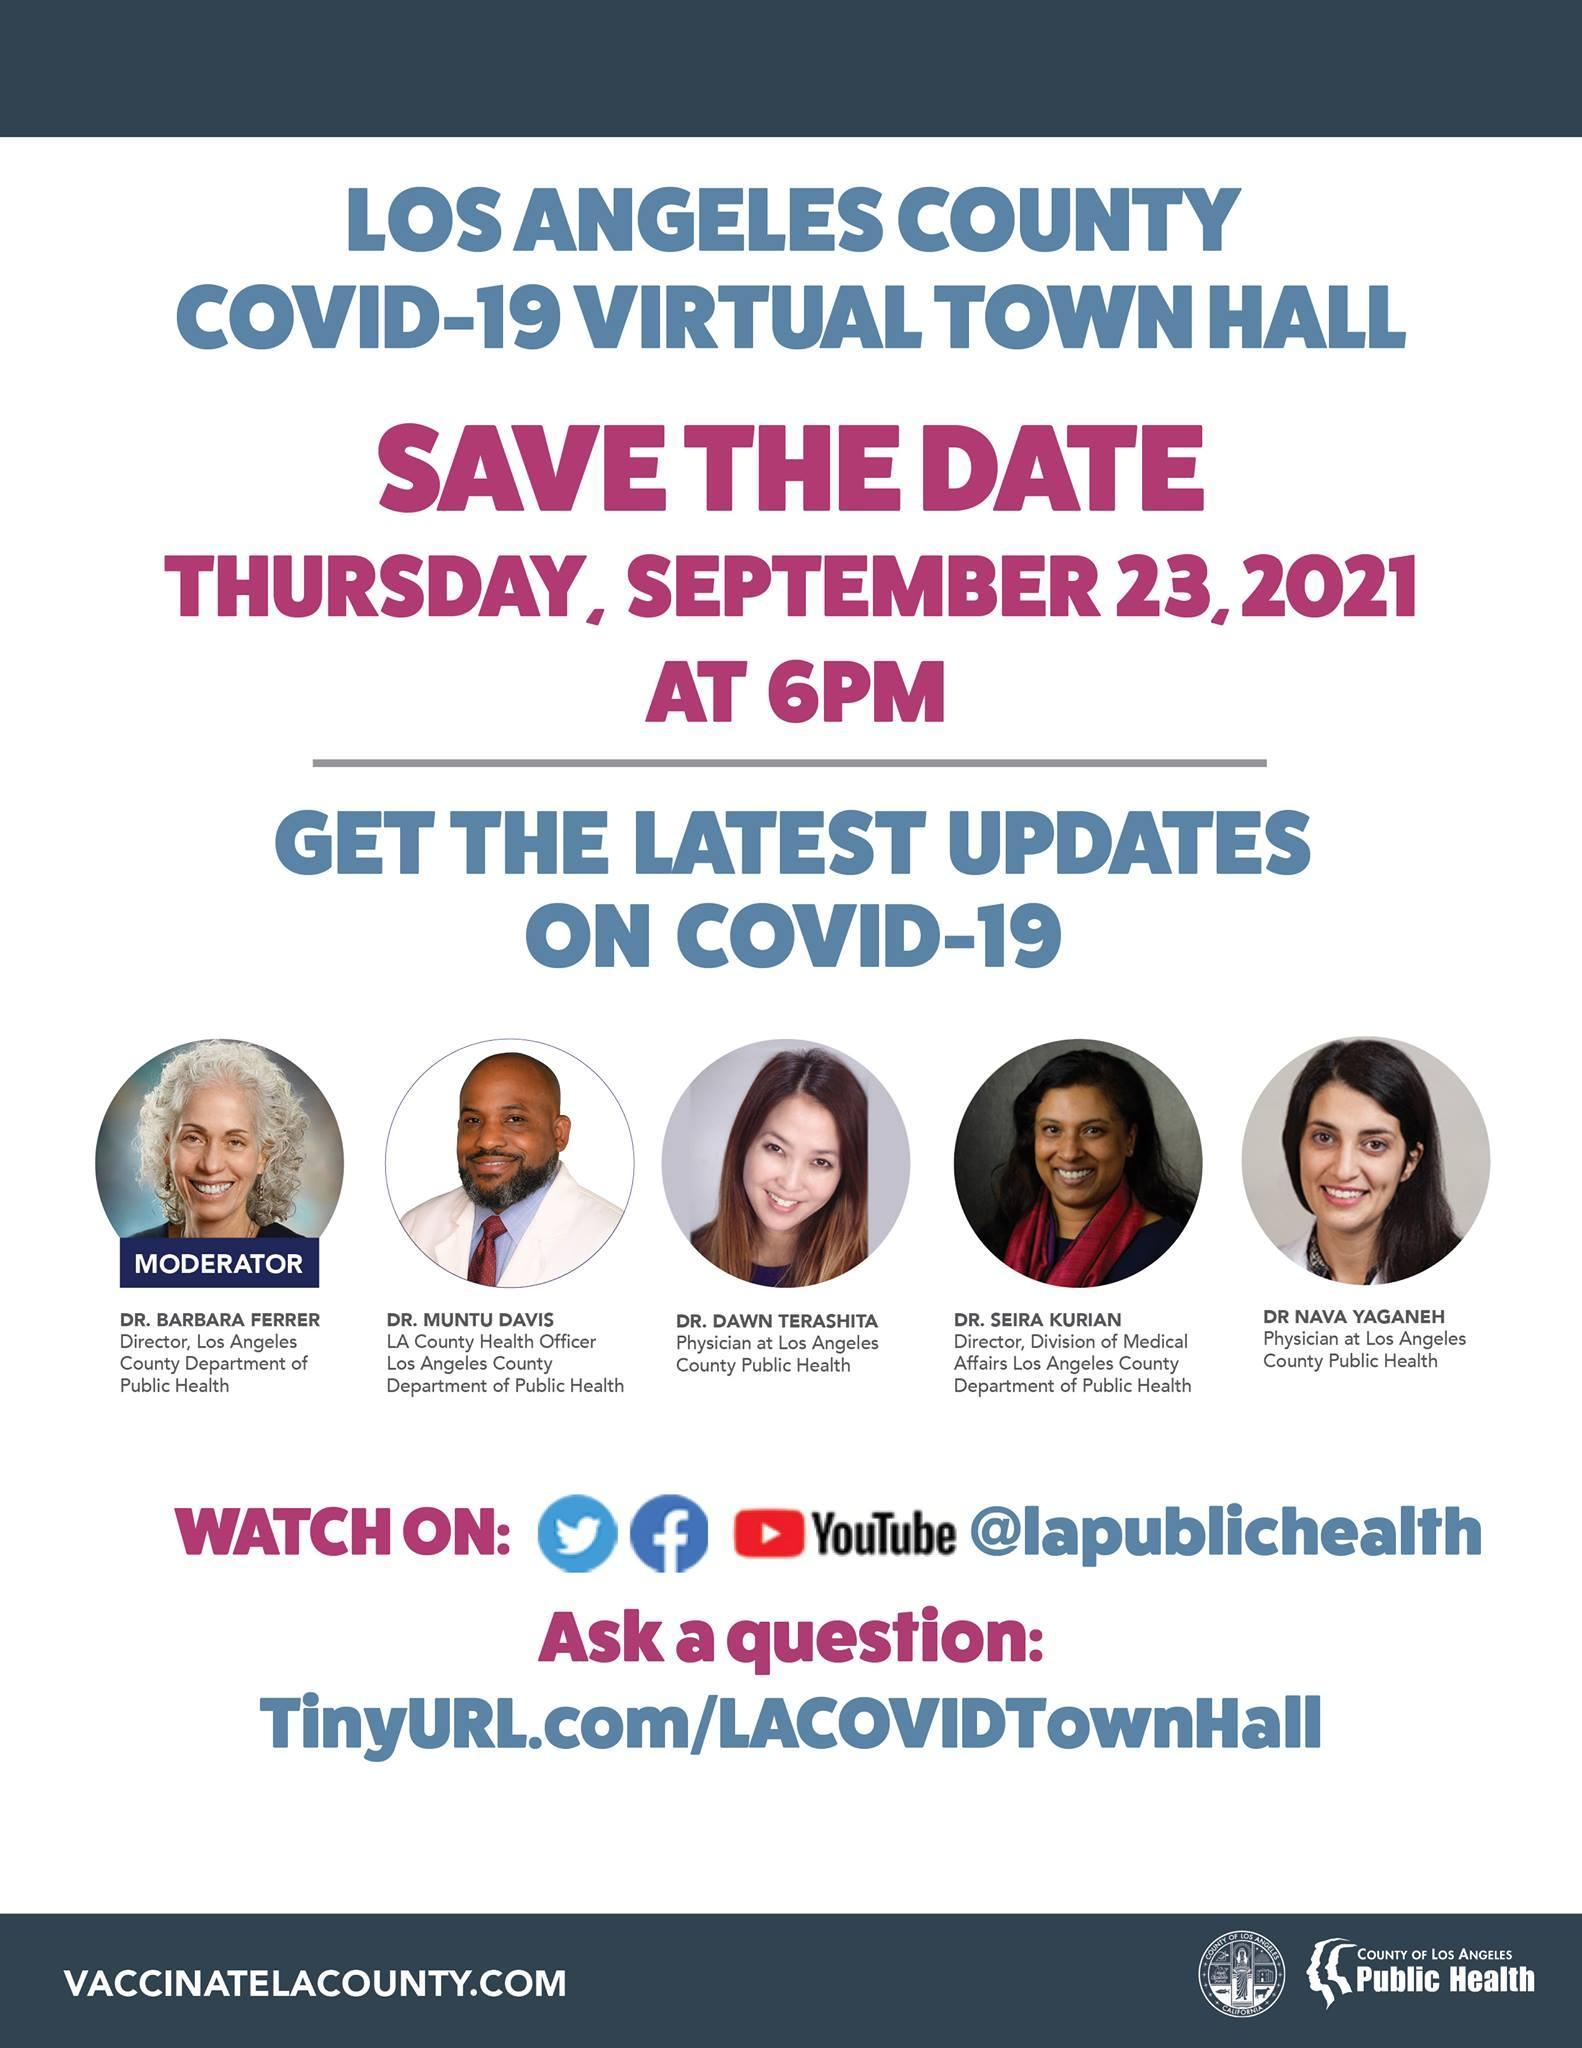 LA County COVID-19 Virtual Town Hall flyer stating all the information listed above